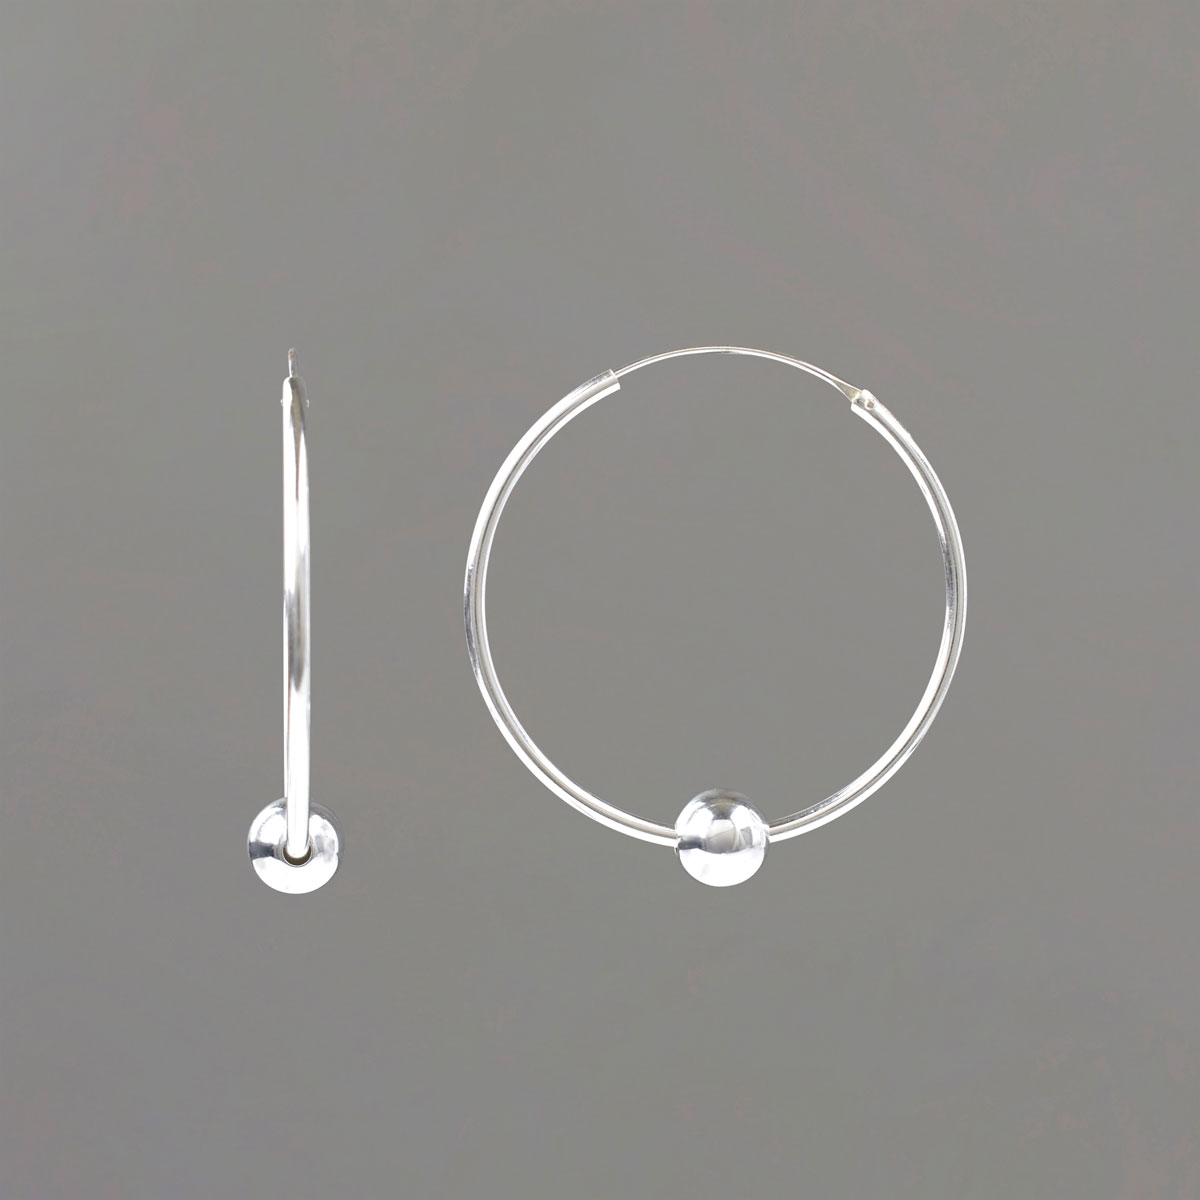 Medium Hoop Earrings in Sterling Silver